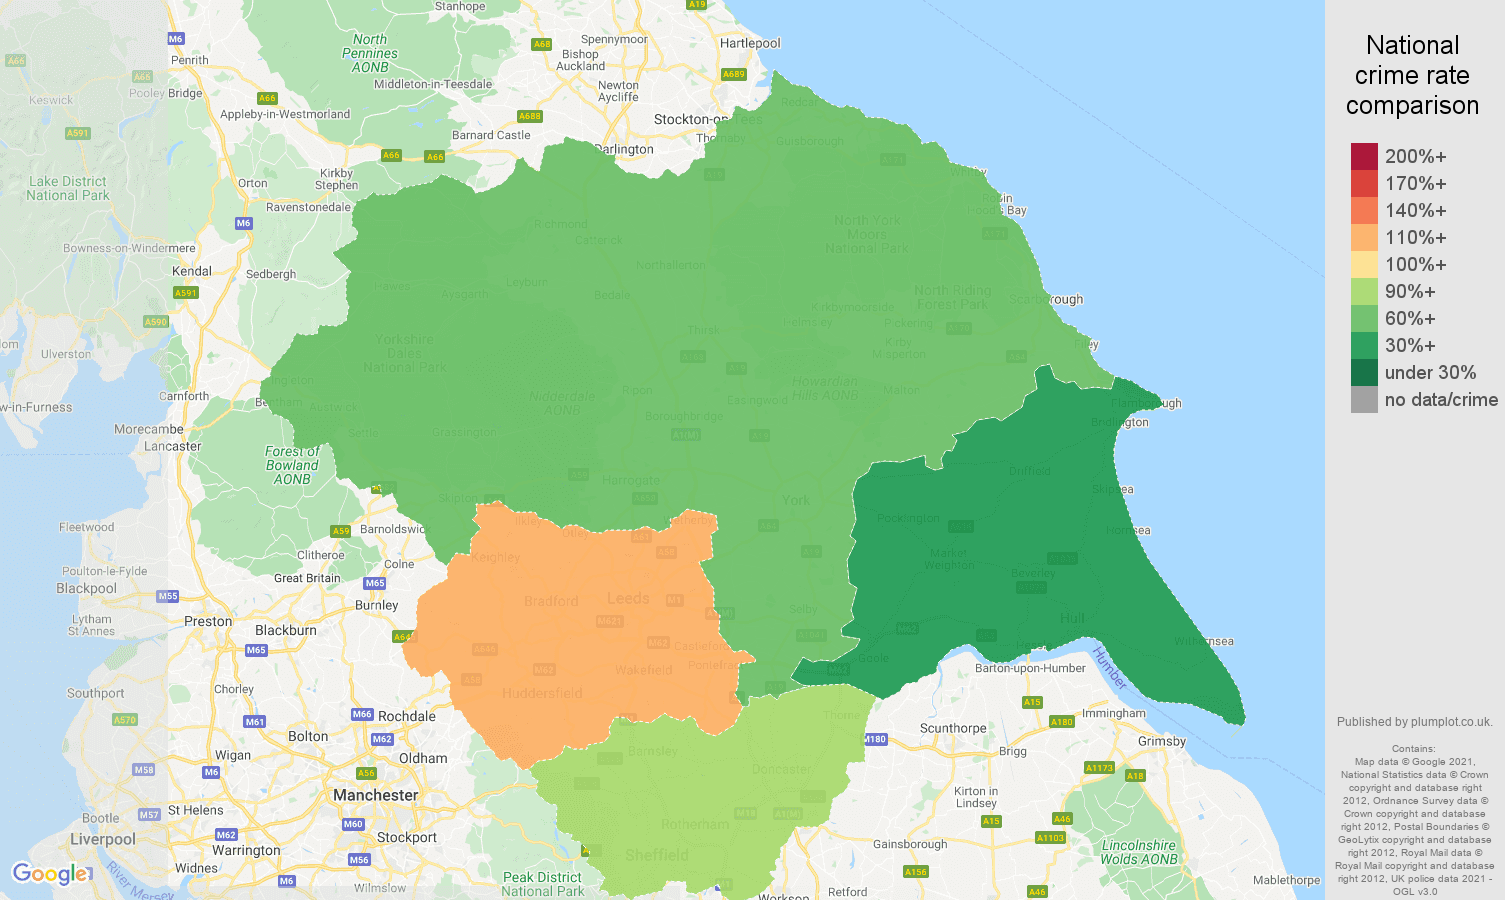 Yorkshire drugs crime rate comparison map